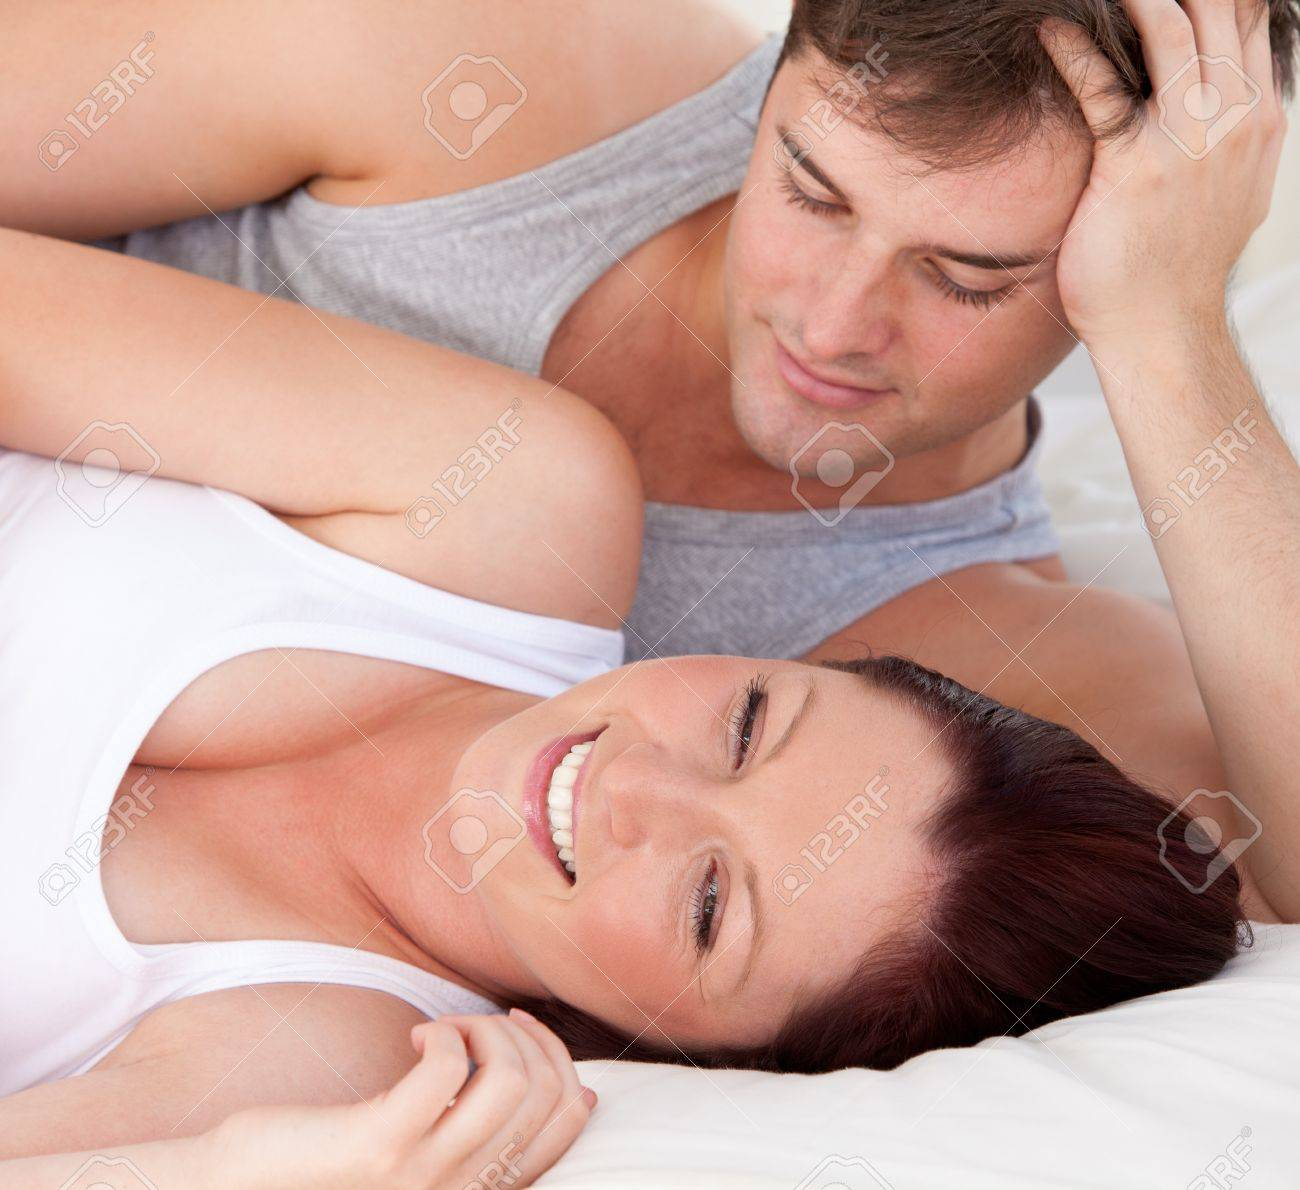 Close-up of an affectionate man looking at his pregnant wife lying on the bed Stock Photo - 10244004